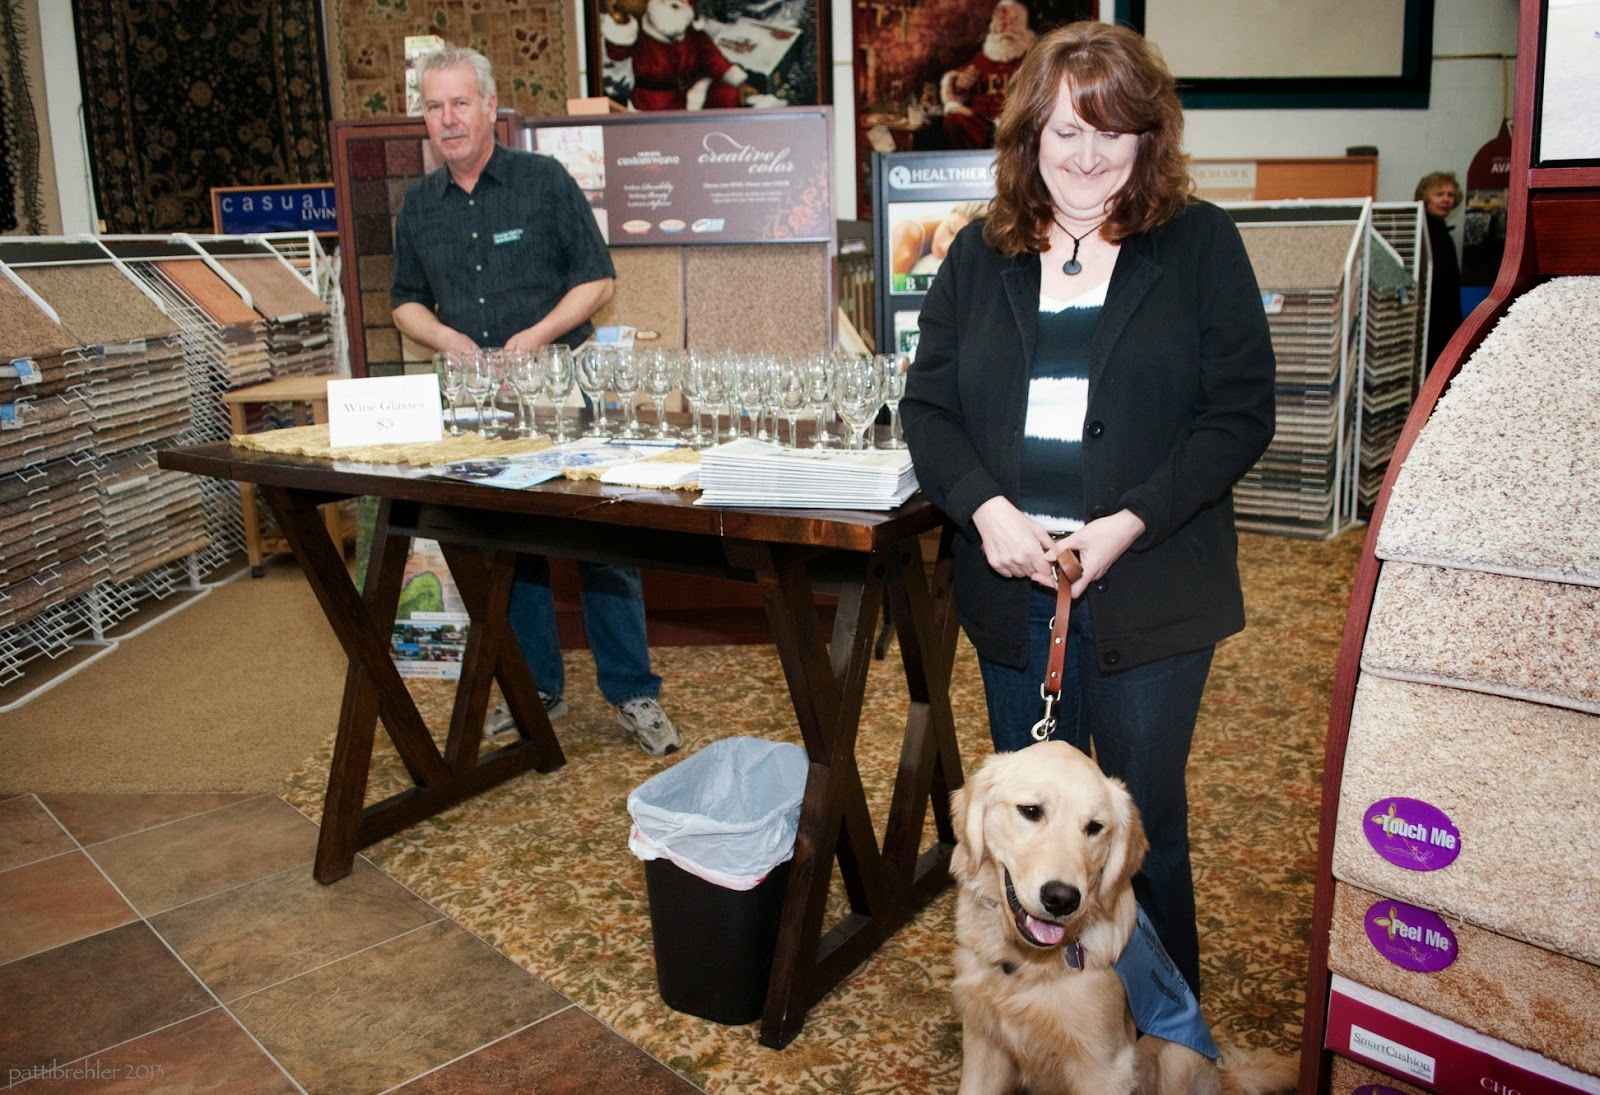 A man wearing a green shirt and blue jeans is standing behind a table that has wine glasses on it. A woman is standing on the right side of the table, she is wearing a black jacket with a black and white striped shirt under it and blue jeans. She has long brown hair and is looking down at a golden retriever that is sitting in front of her. She is holding the dog's brown leash. The dog is wearing a baby blue working jacket. They are all inside of a carpet store, so there are carpet displays on either side of them and behind them.